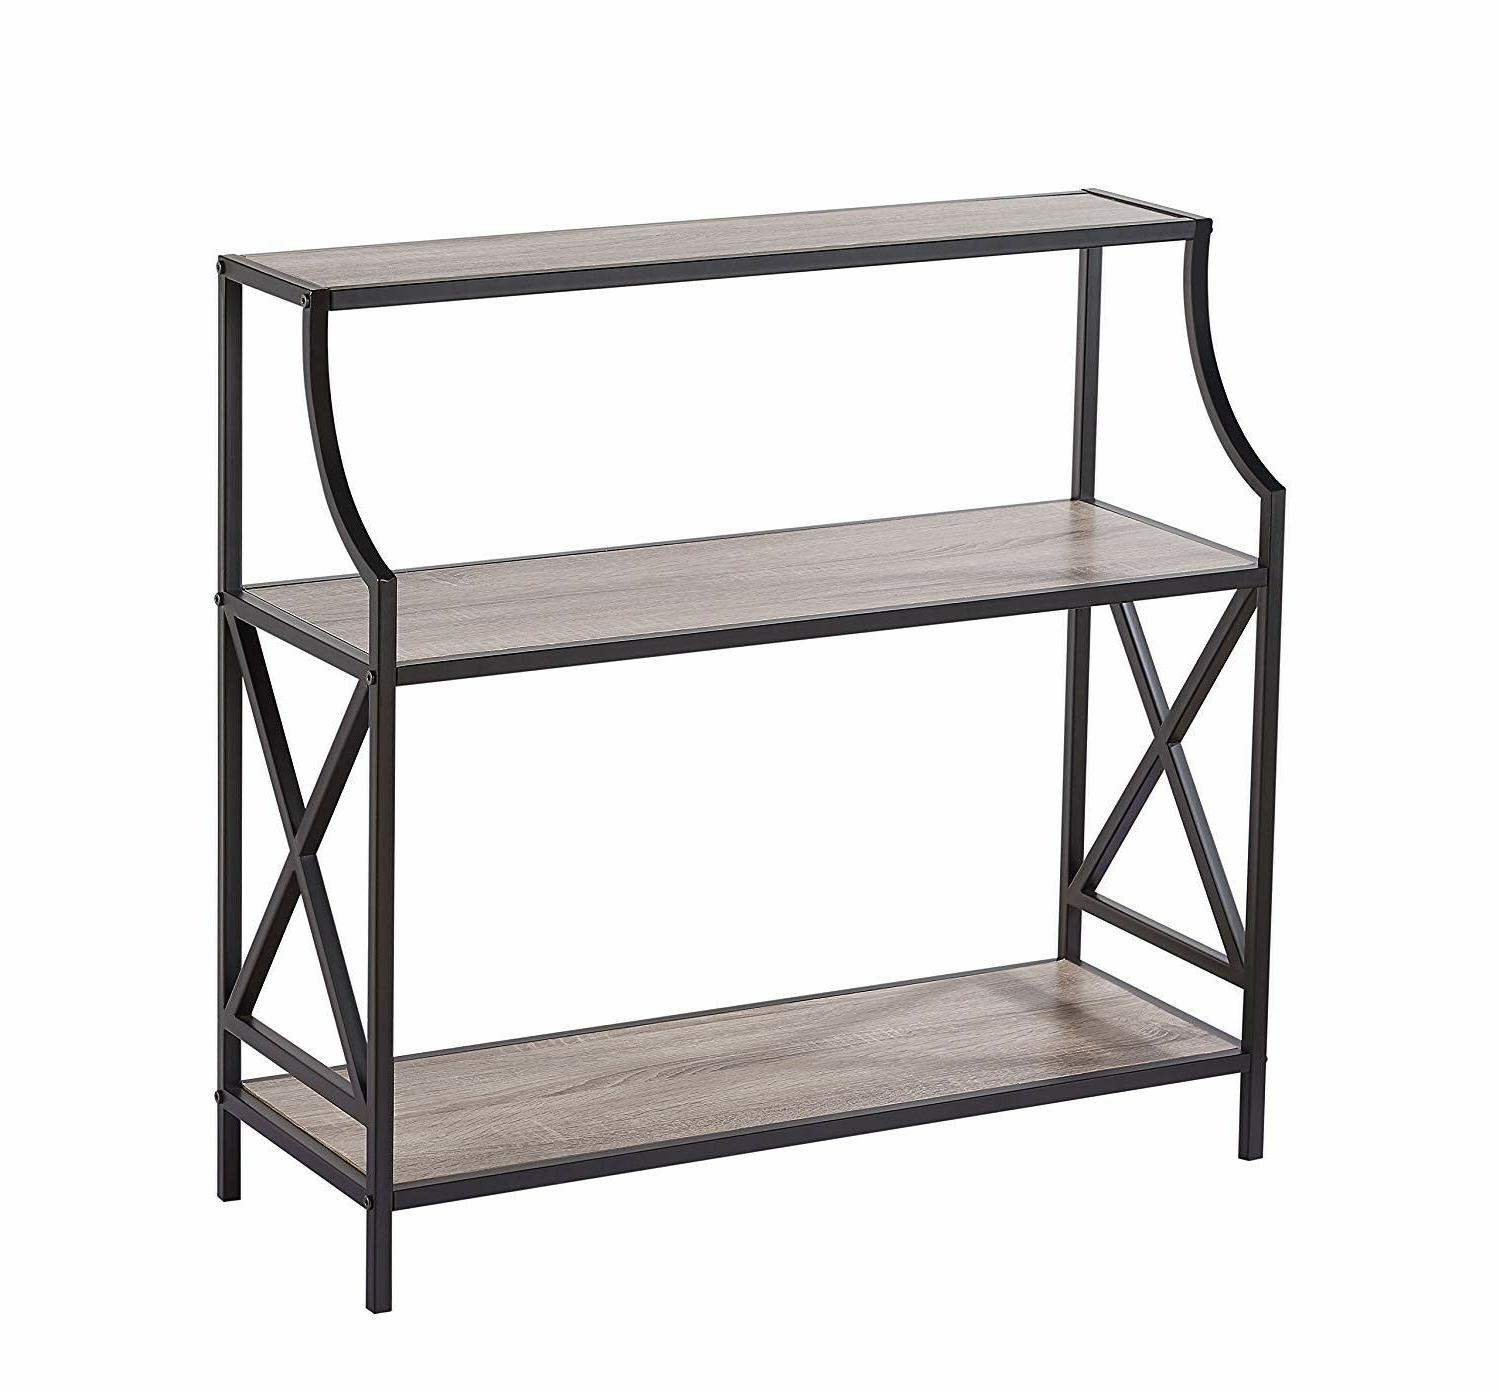 Ehomeproducts Console Table Narrow Modern